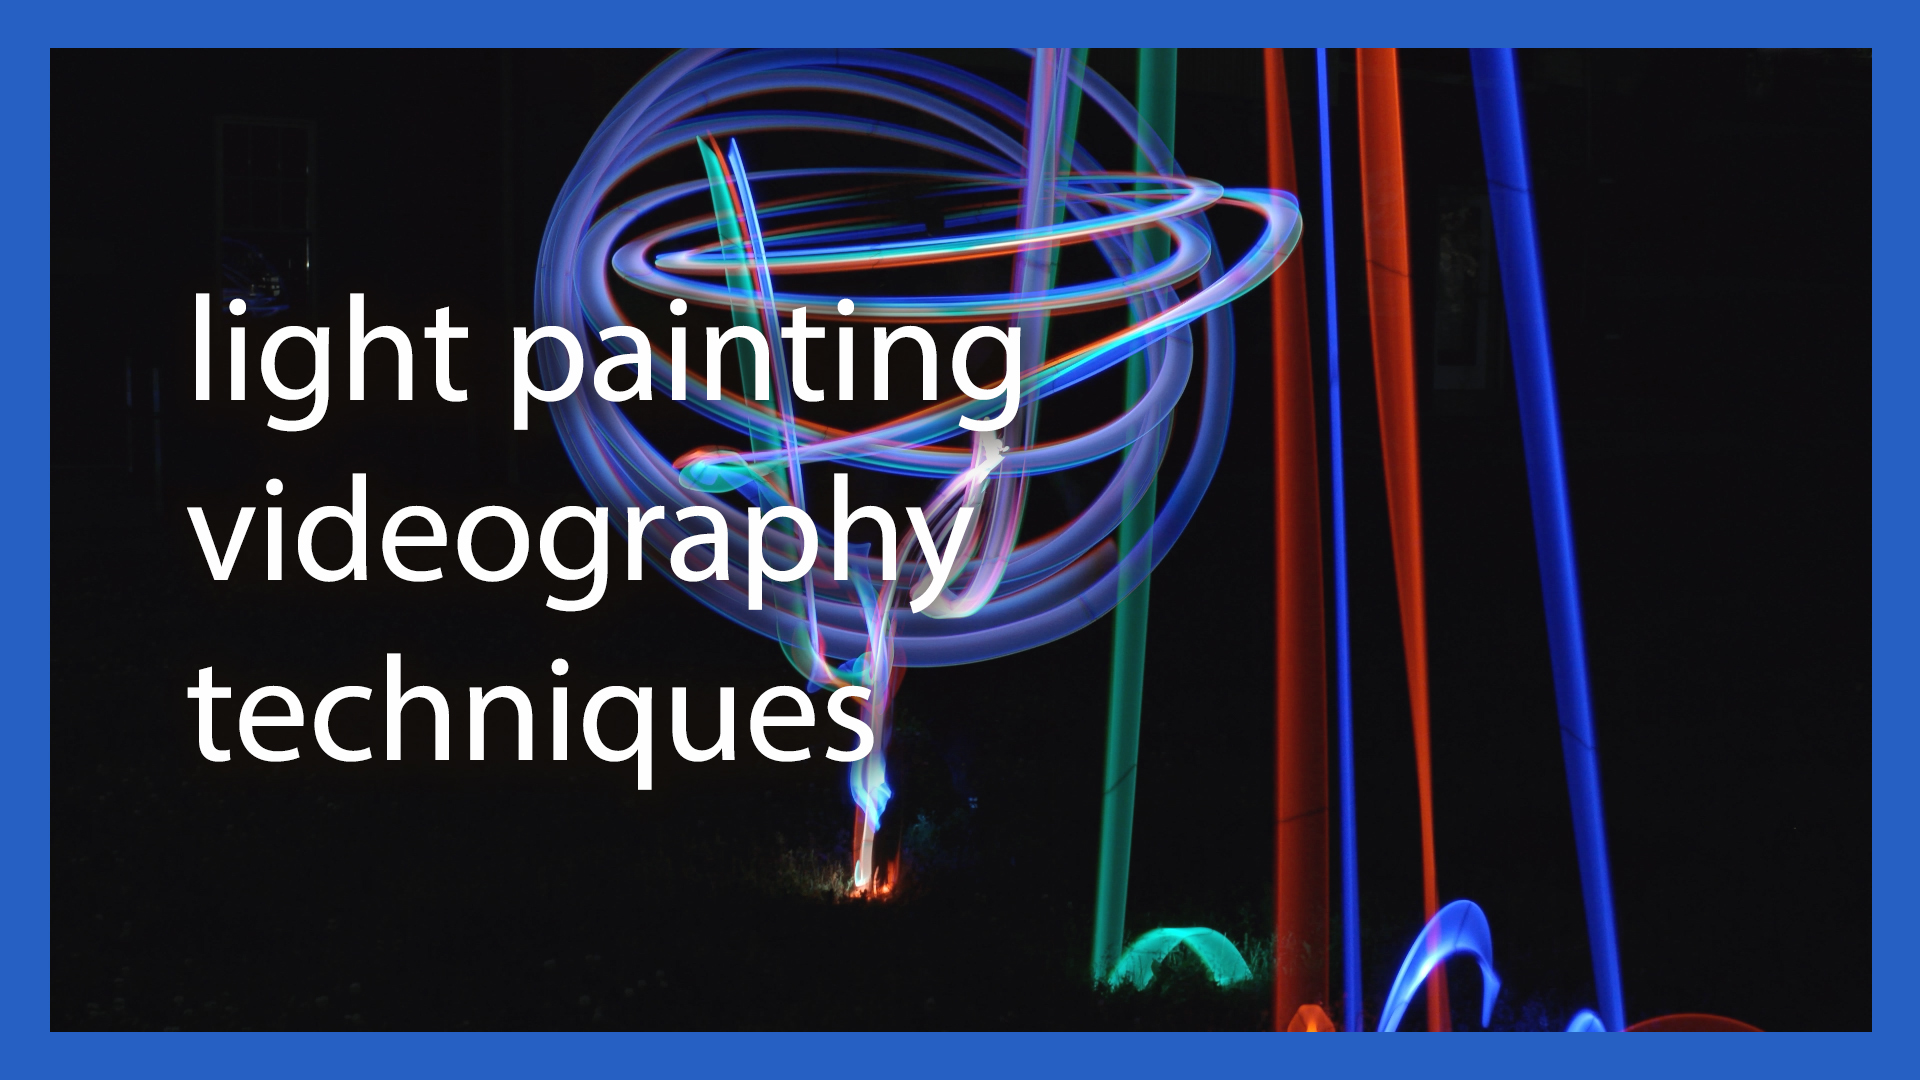 Light Painting Videography Techniques